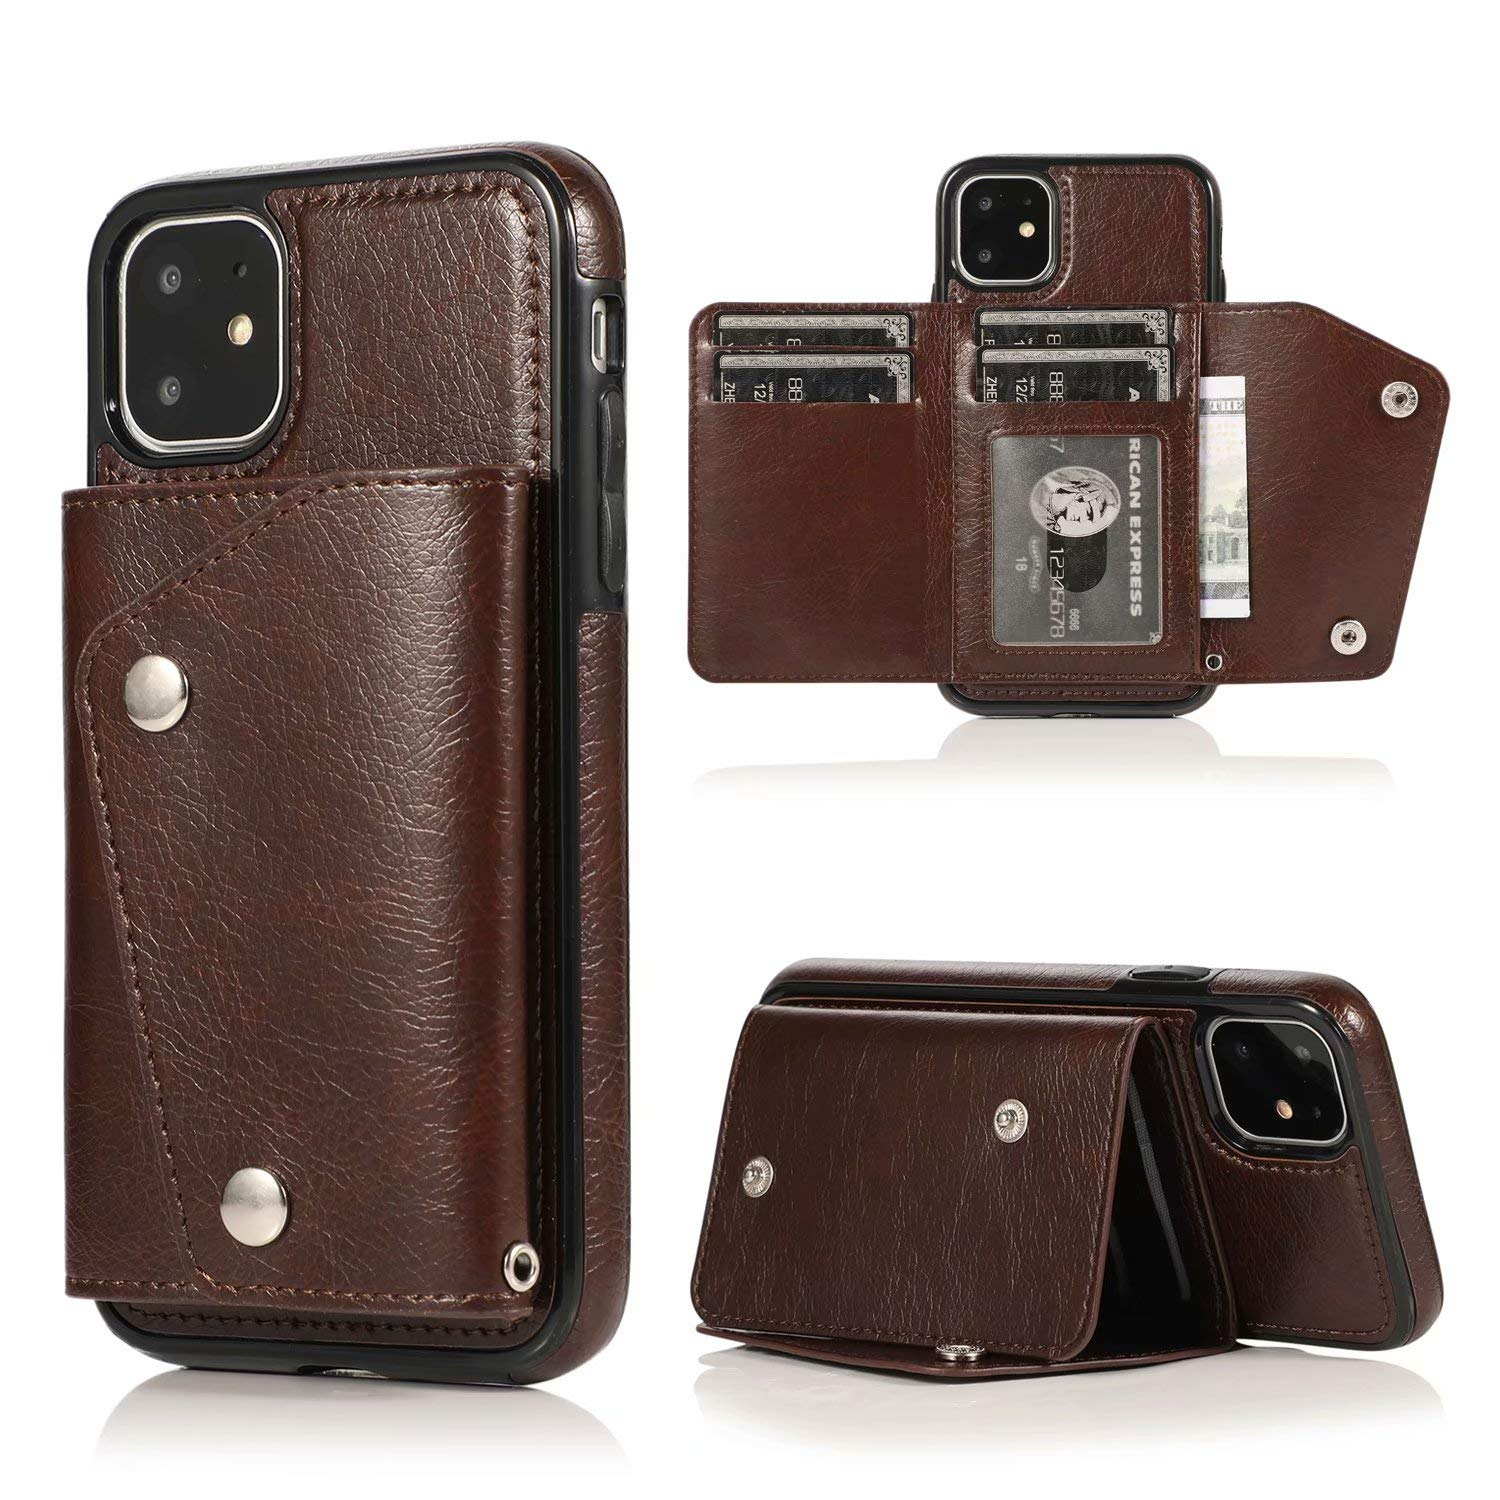 iPhone 11 Wallet Case, Ranyi Leather Wallet Case with Credit Card Holder Slots Wrist Strap Premium PU Leather Flip Folio Wallet Purse Protective Case for Apple 2019 6.1 Inch iPhone 11 (Brown) by Ranyi